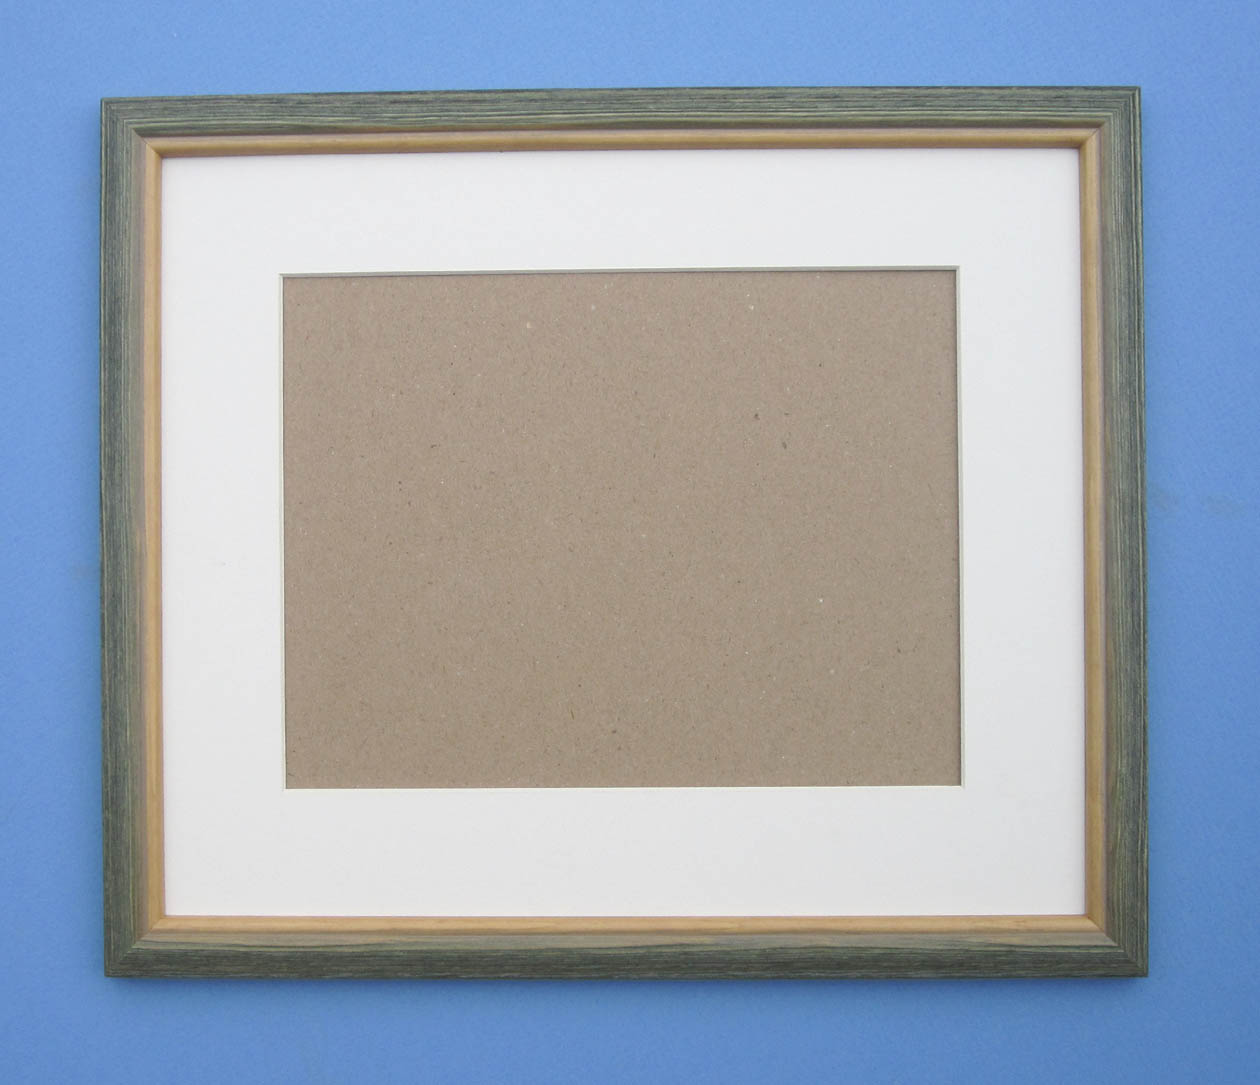 picture frames uk  READY MADE PICTURE FRAMES UK,TO BUY ONLINE, PICTURE FRAME, PHOTO FRAME